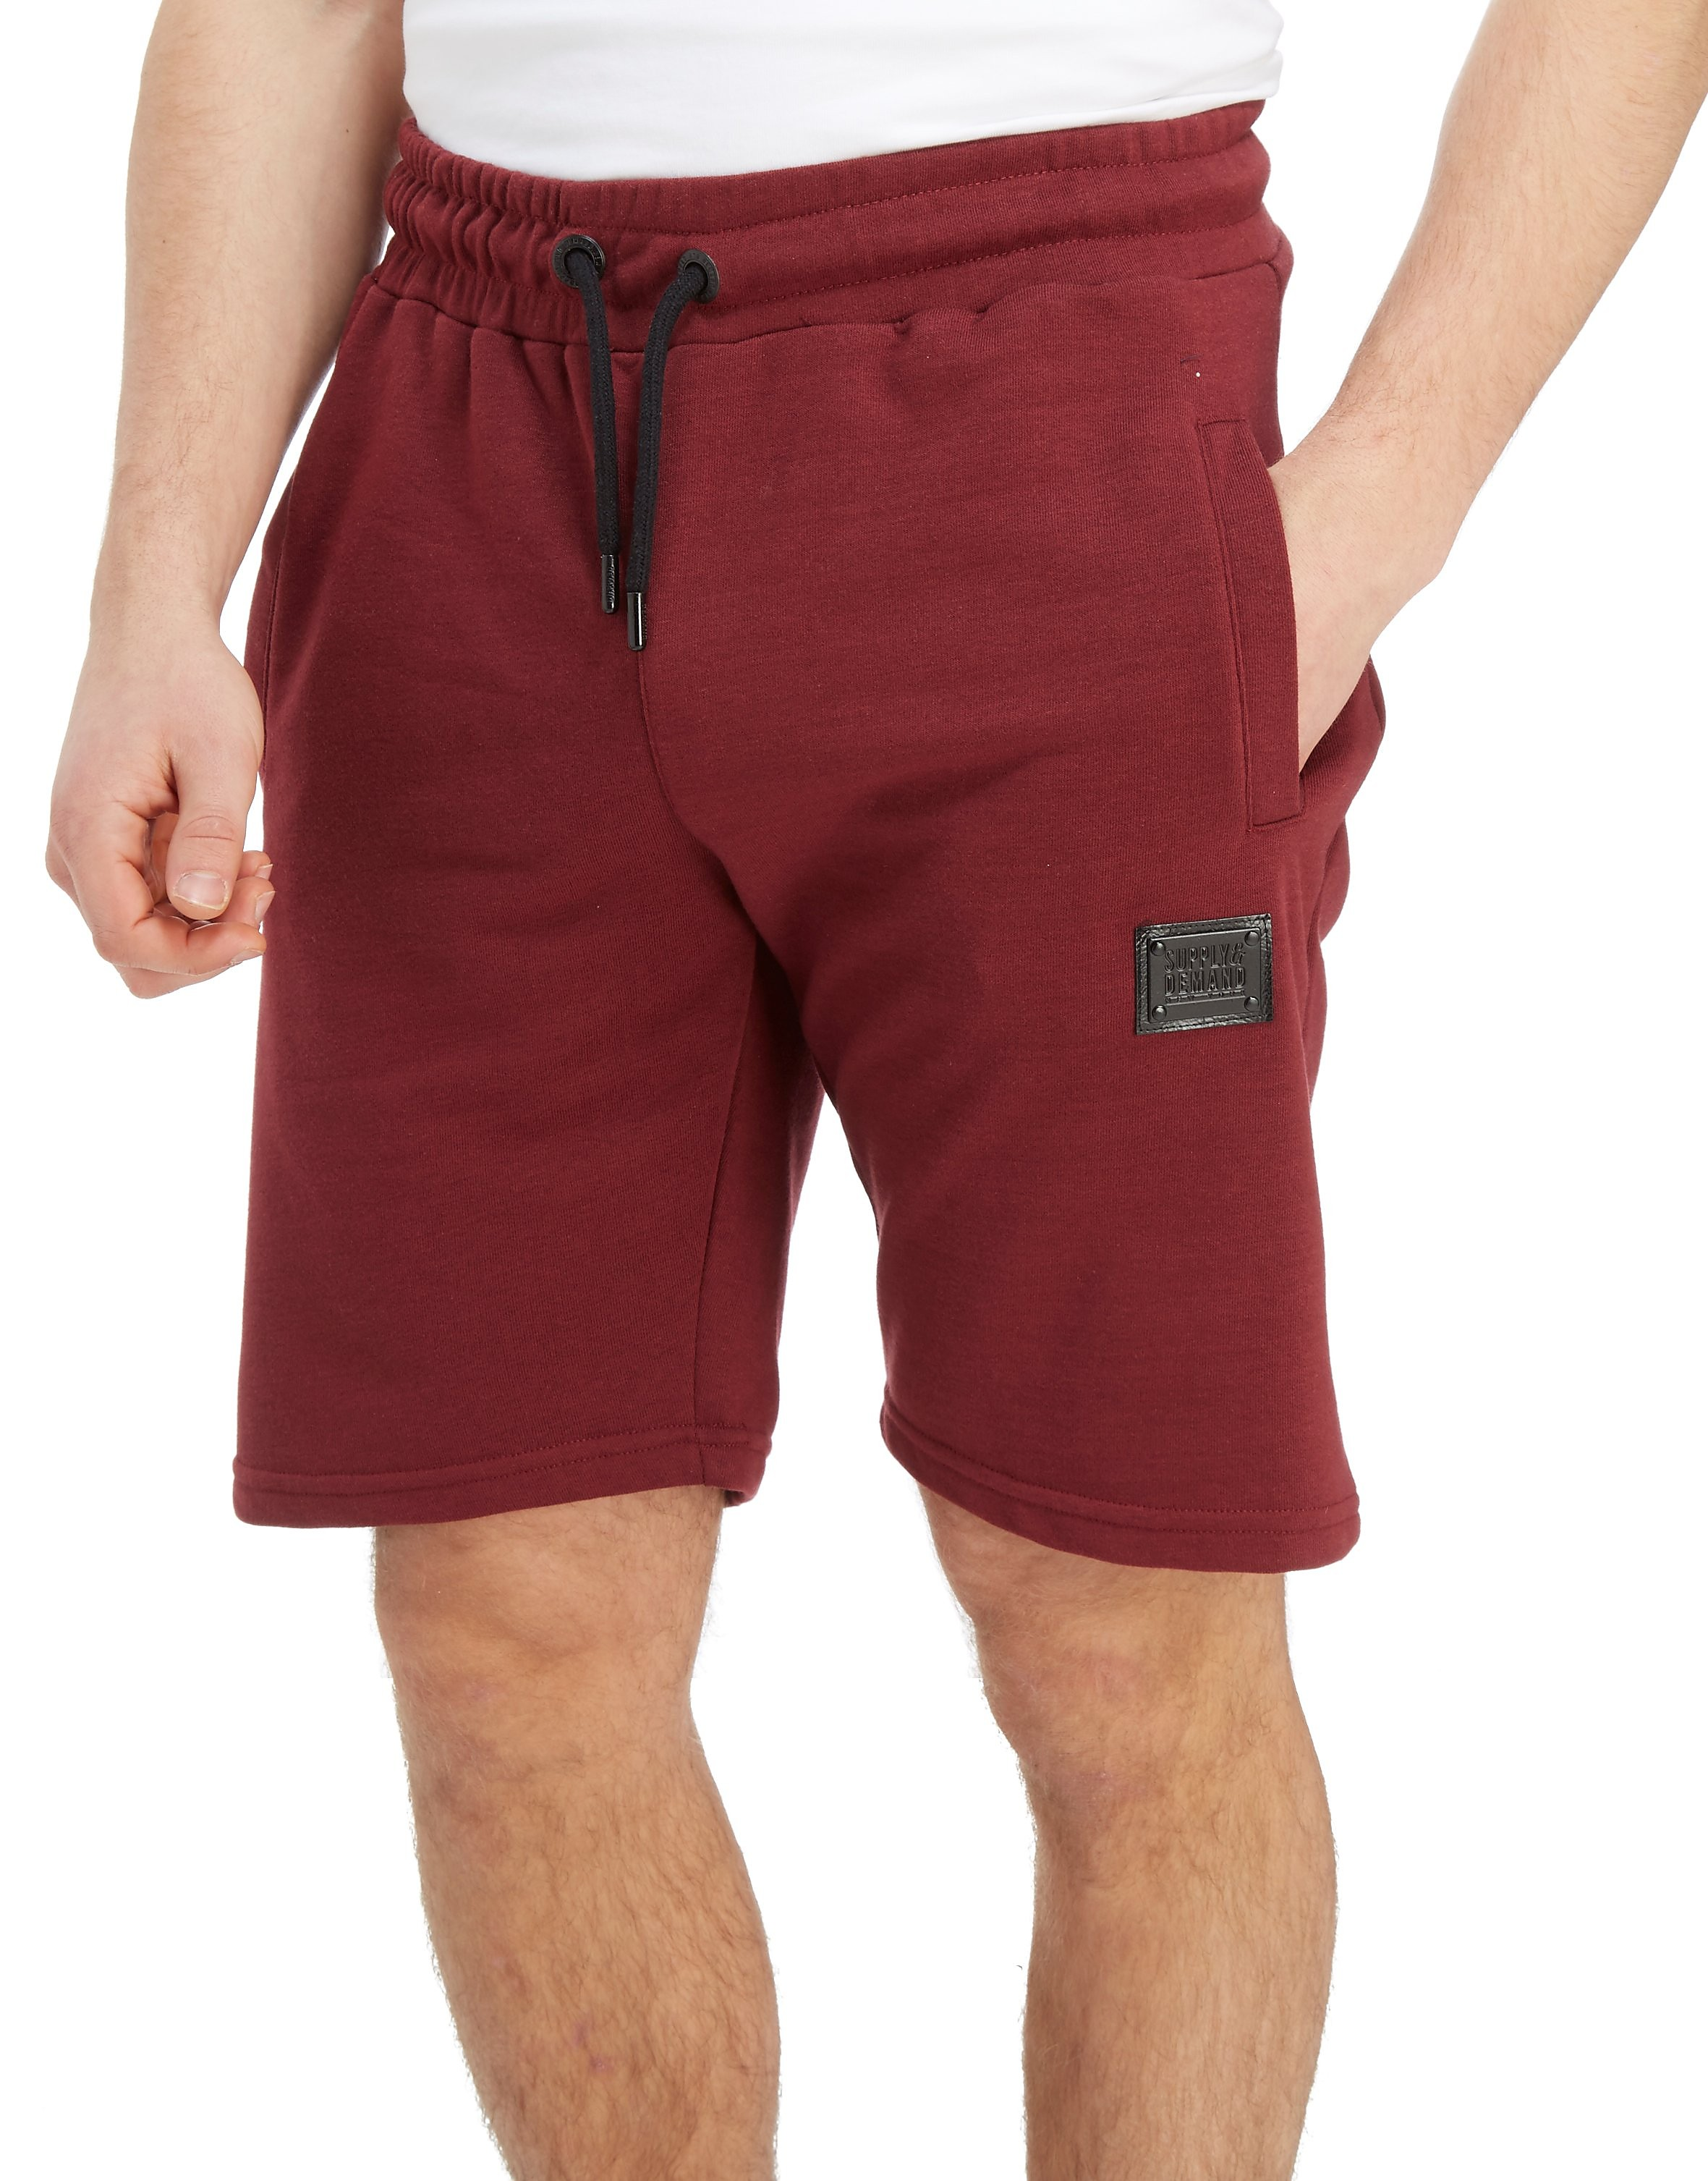 Supply & Demand Loop Shorts - Only at JD, Burgundy